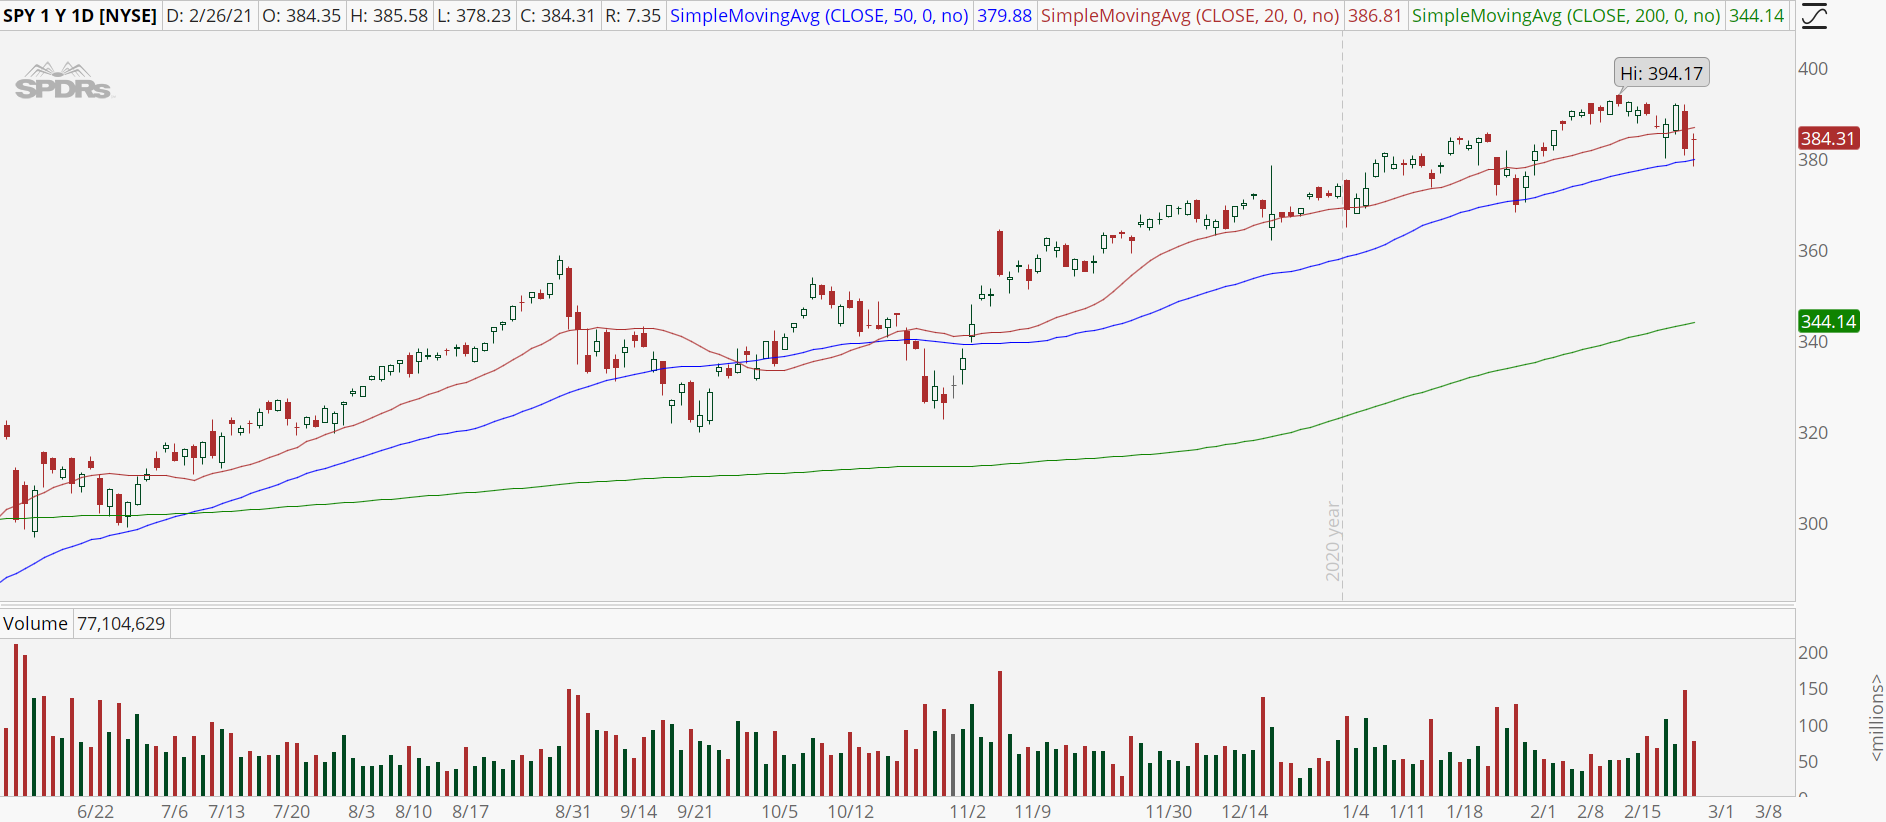 S&P 500 ETF (SPY) with bull retracement pattern